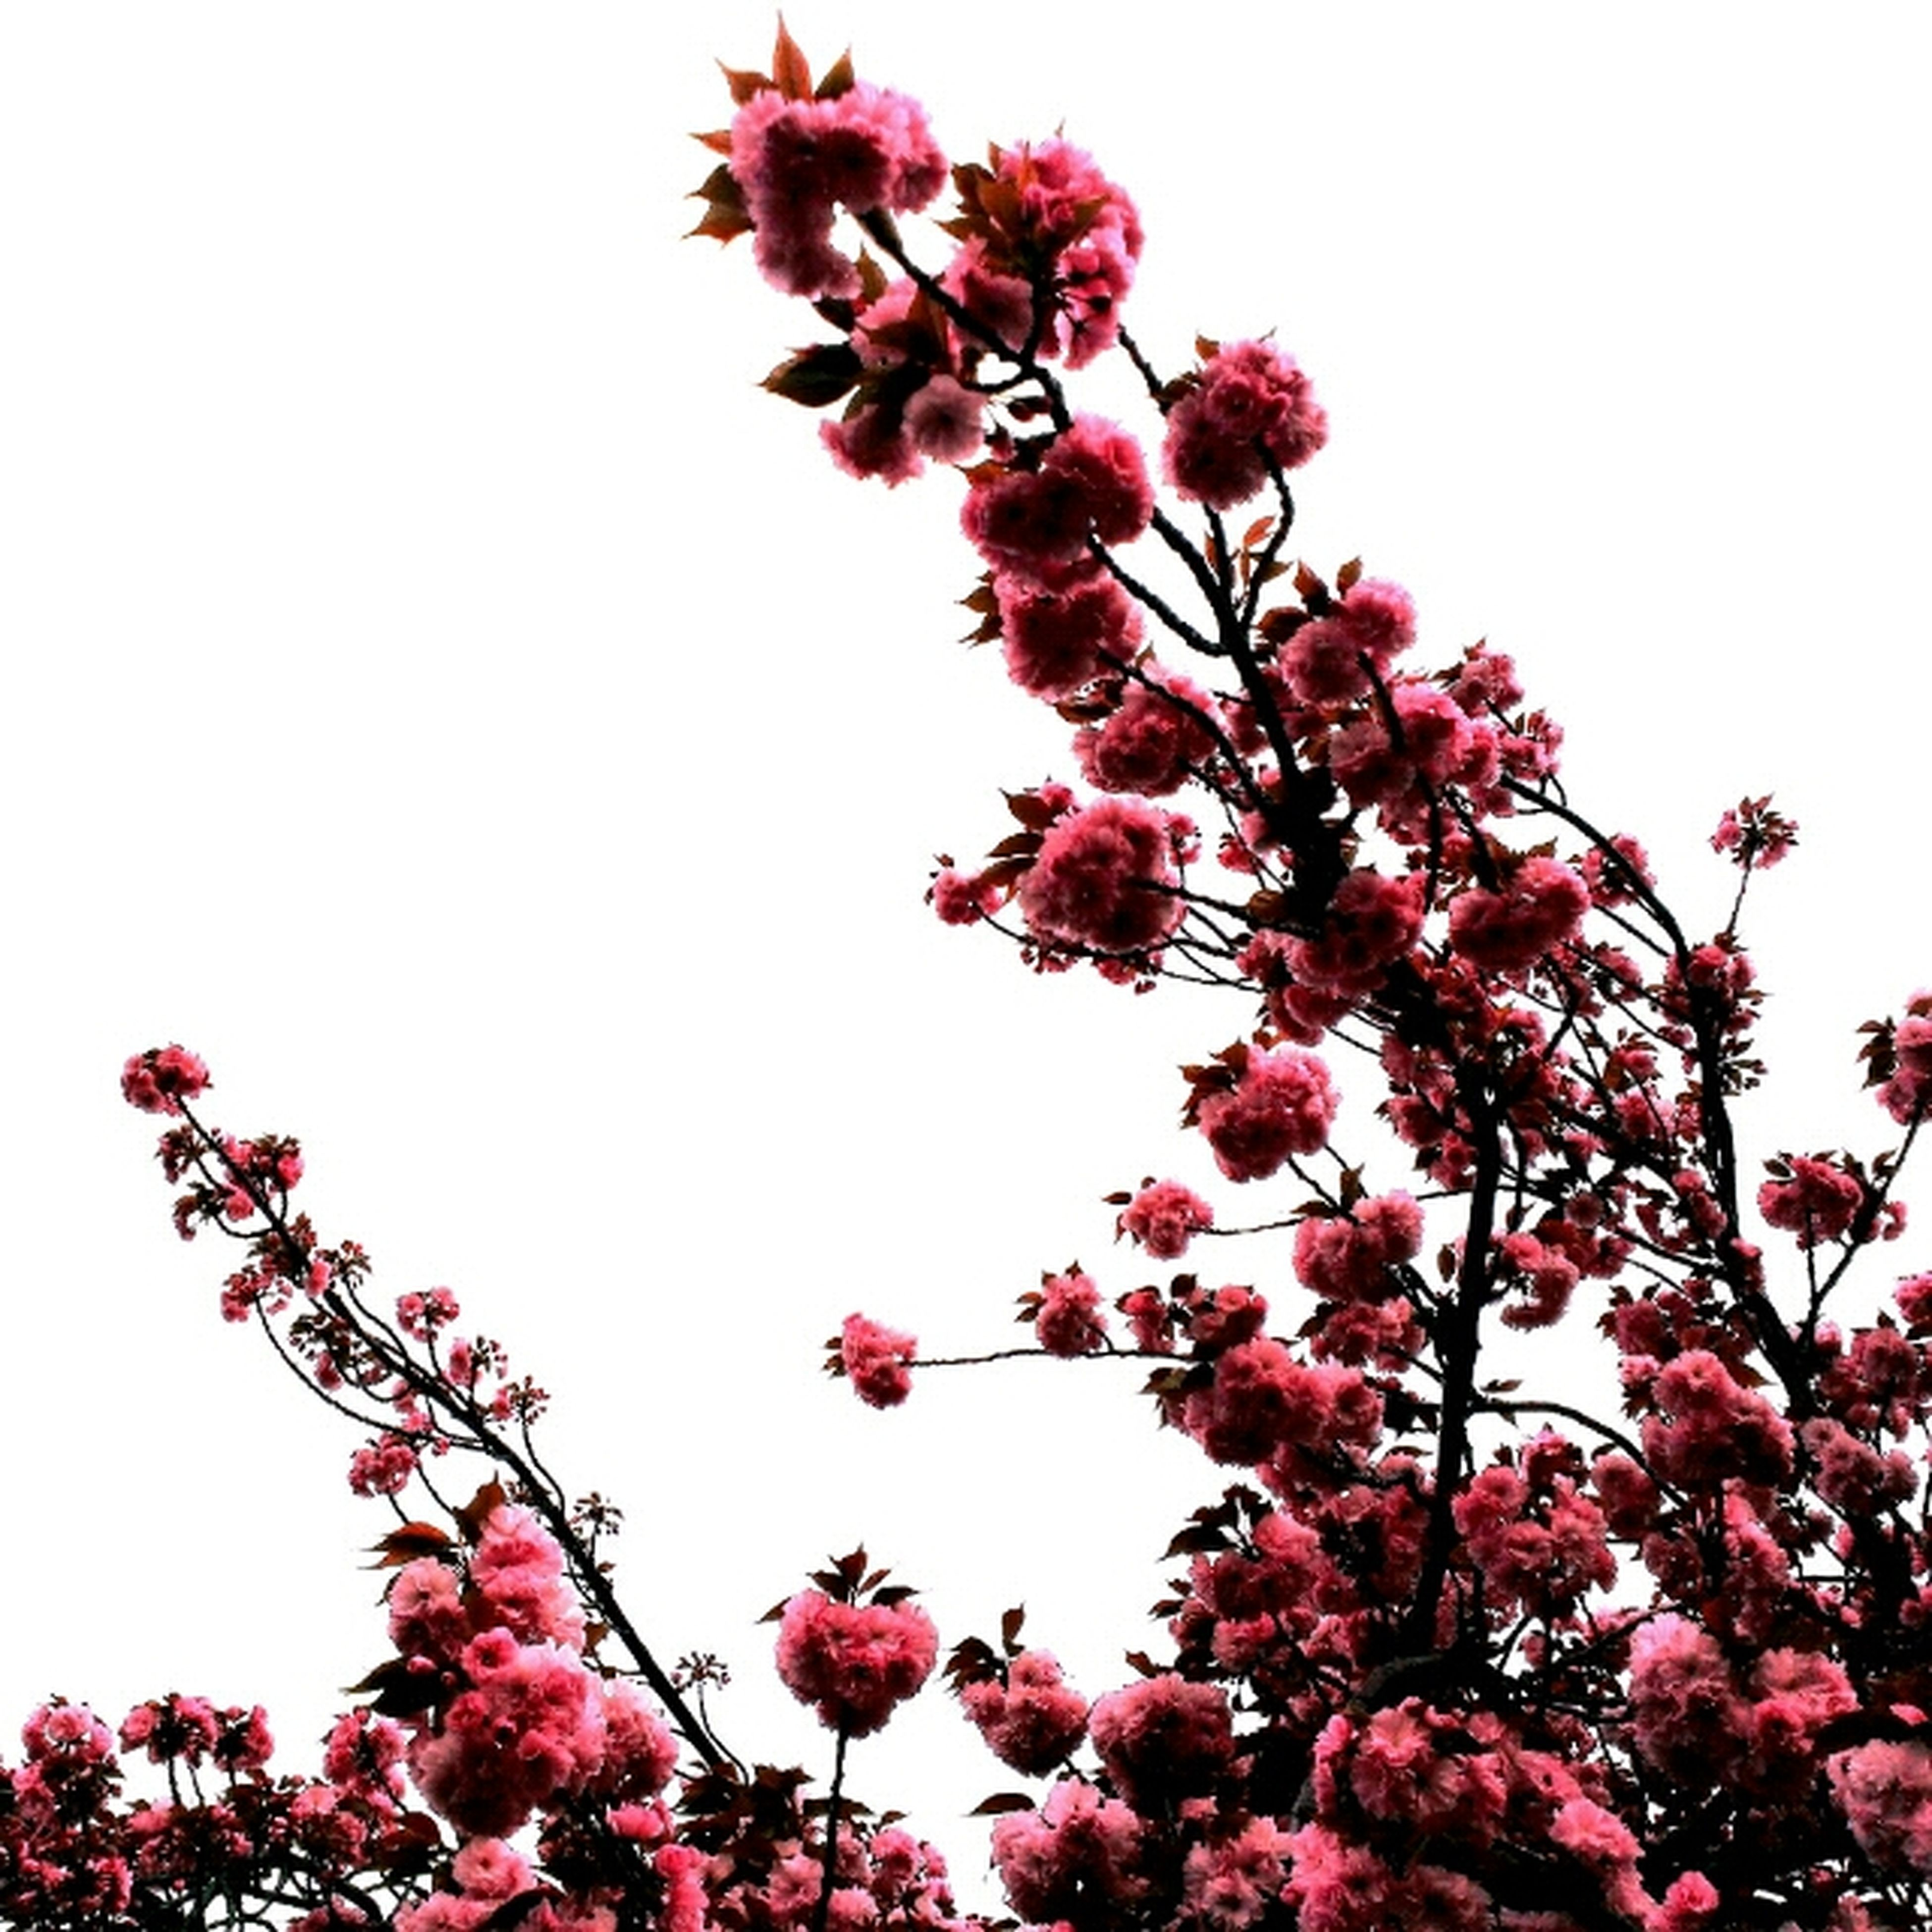 flower, clear sky, low angle view, freshness, growth, pink color, tree, beauty in nature, branch, fragility, nature, copy space, blossom, red, blooming, pink, day, in bloom, outdoors, springtime